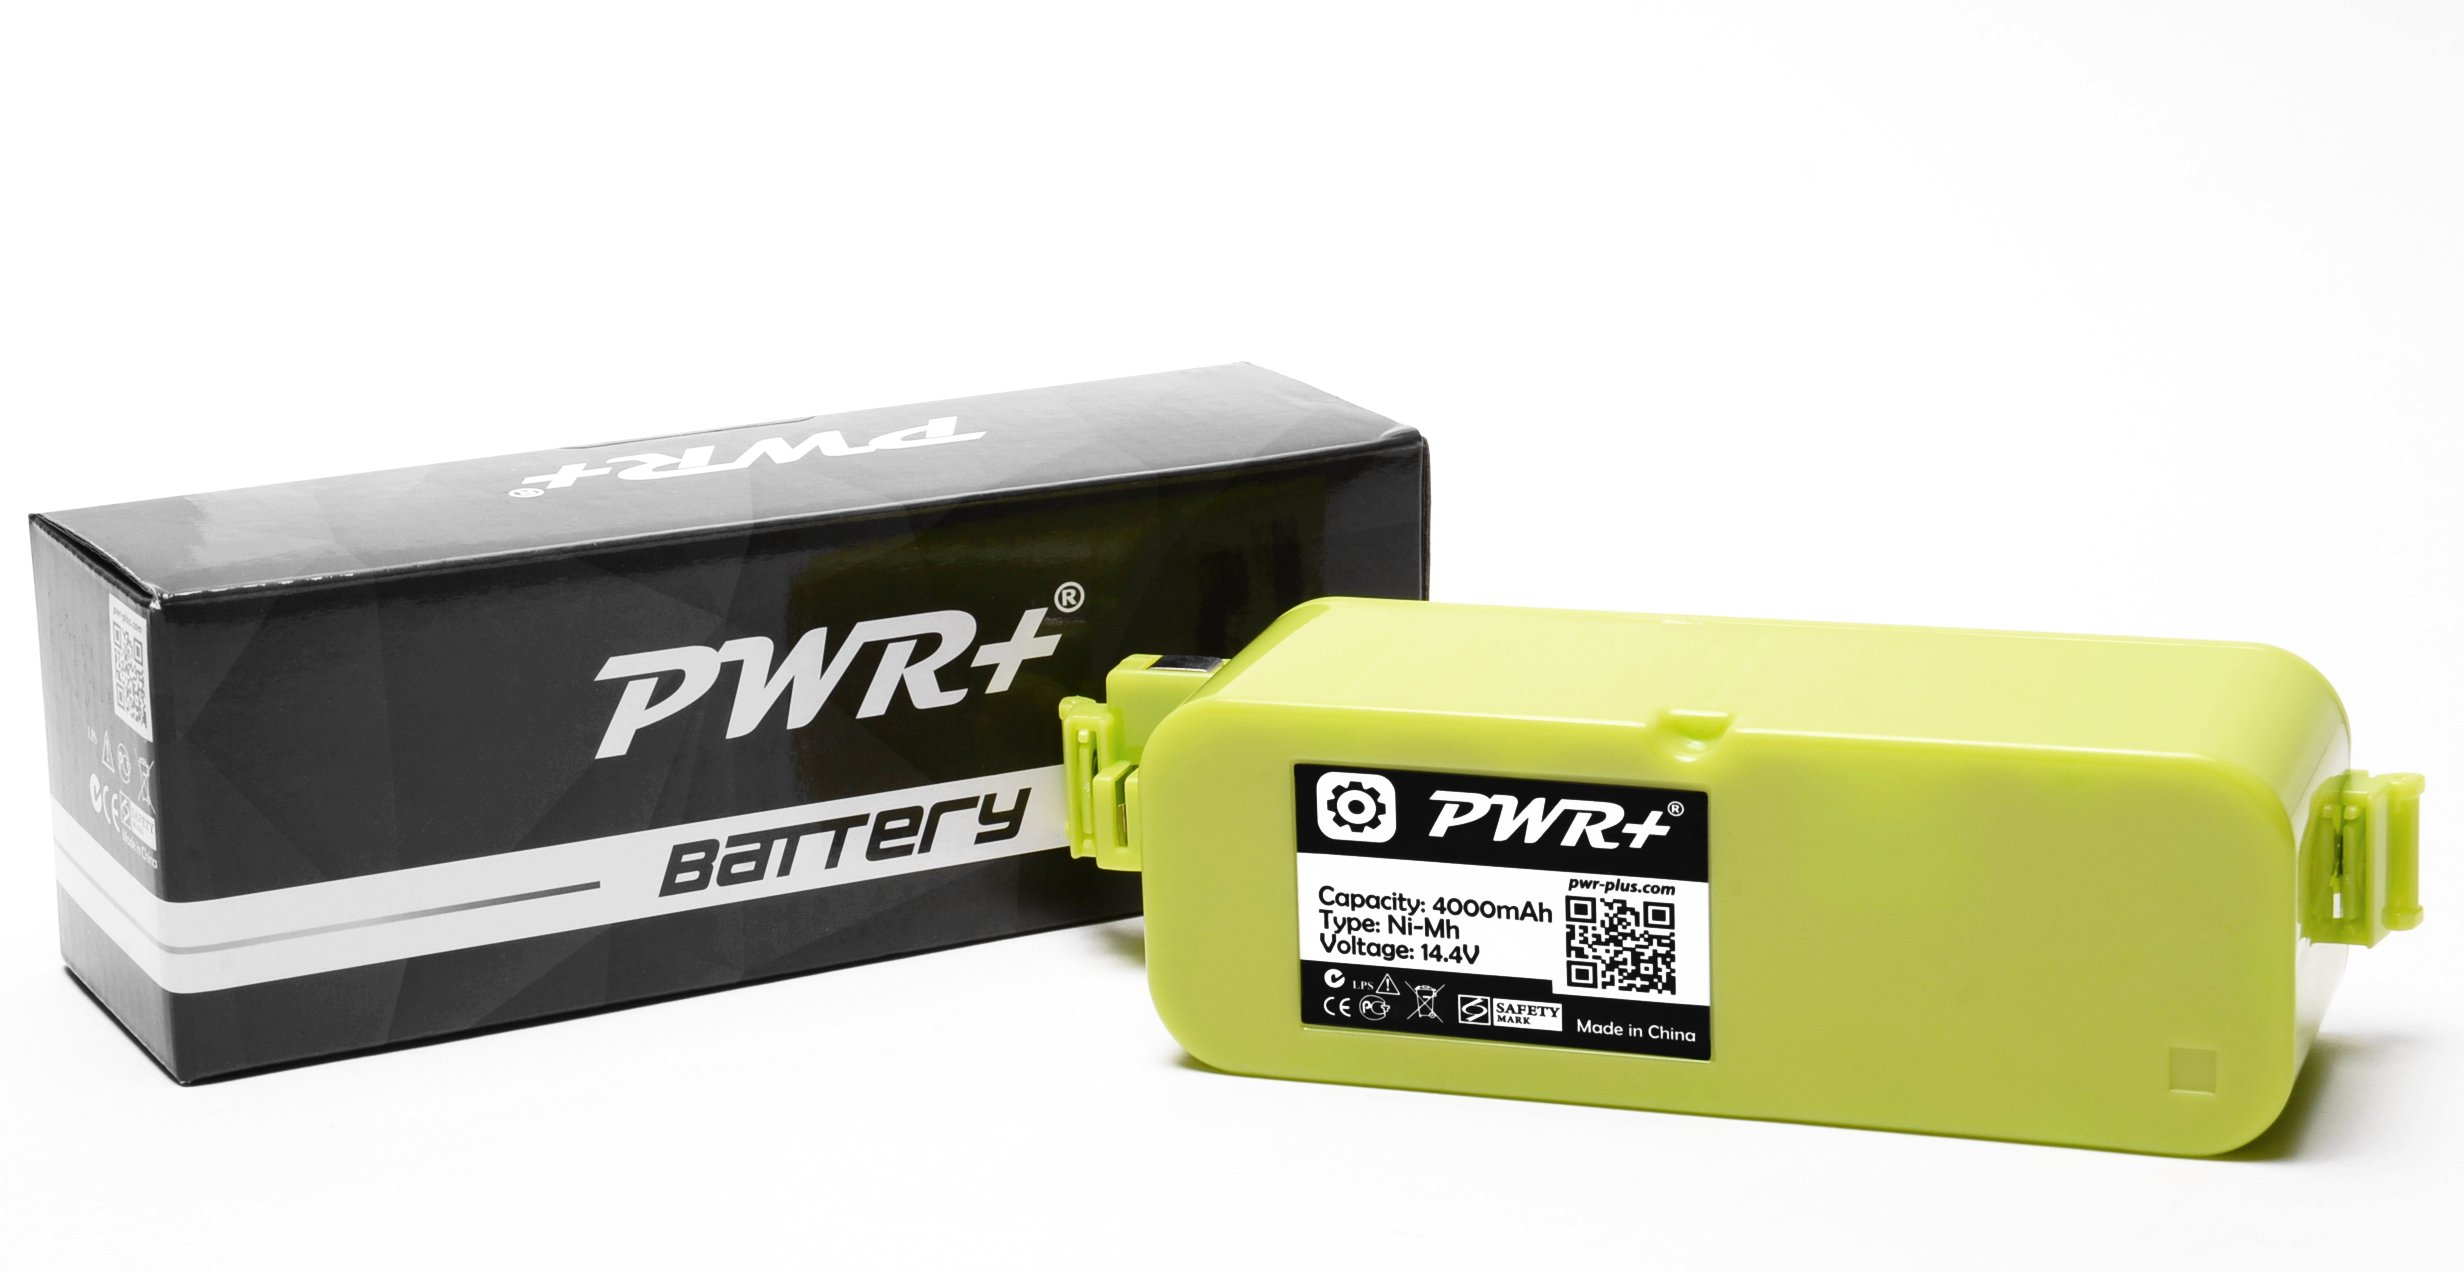 Pwr+ 4000mAh Extended Replacement-Battery for Irobot-Roomba 400 405 410 415 416 418 4000 4100 4105 4110 4130 4150 4170 4188 4210 4220 4225 4230 4232 4260 4296 400-Discovery-Create Dirt-Dog-Schedular